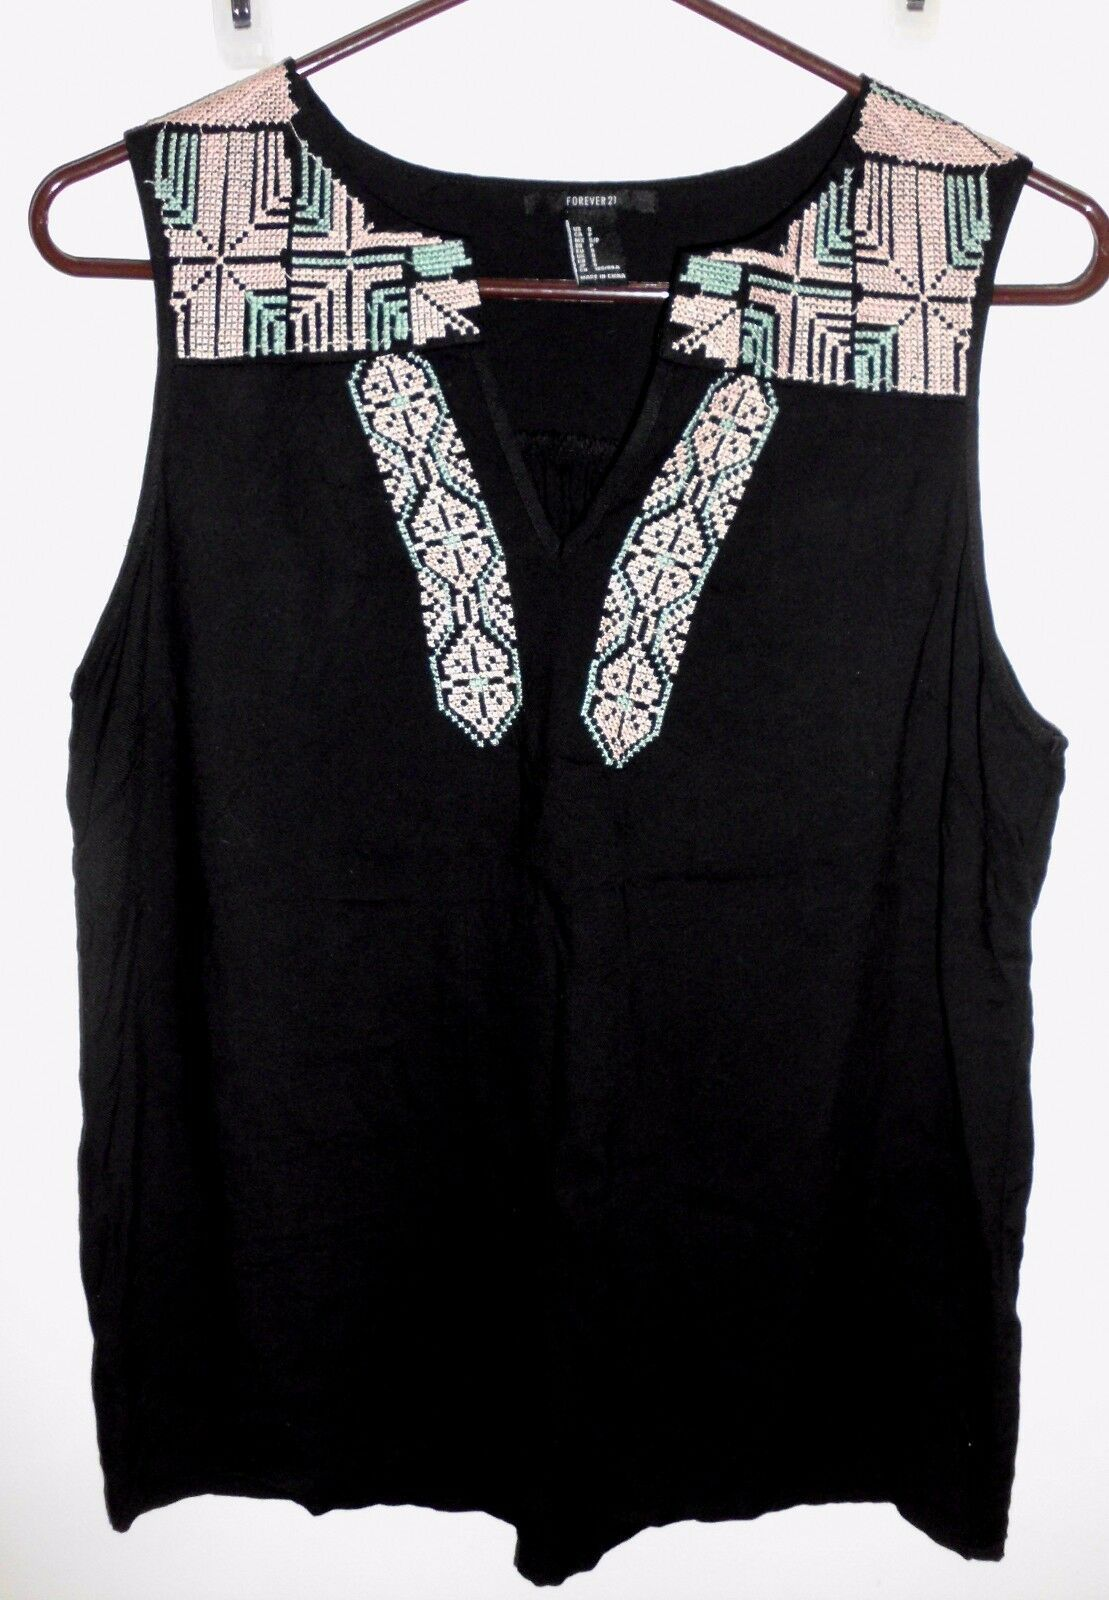 Primary image for FOREVER 21 Top SMALL Black Cross Stitch Embellished Southwest Style Sleeveless